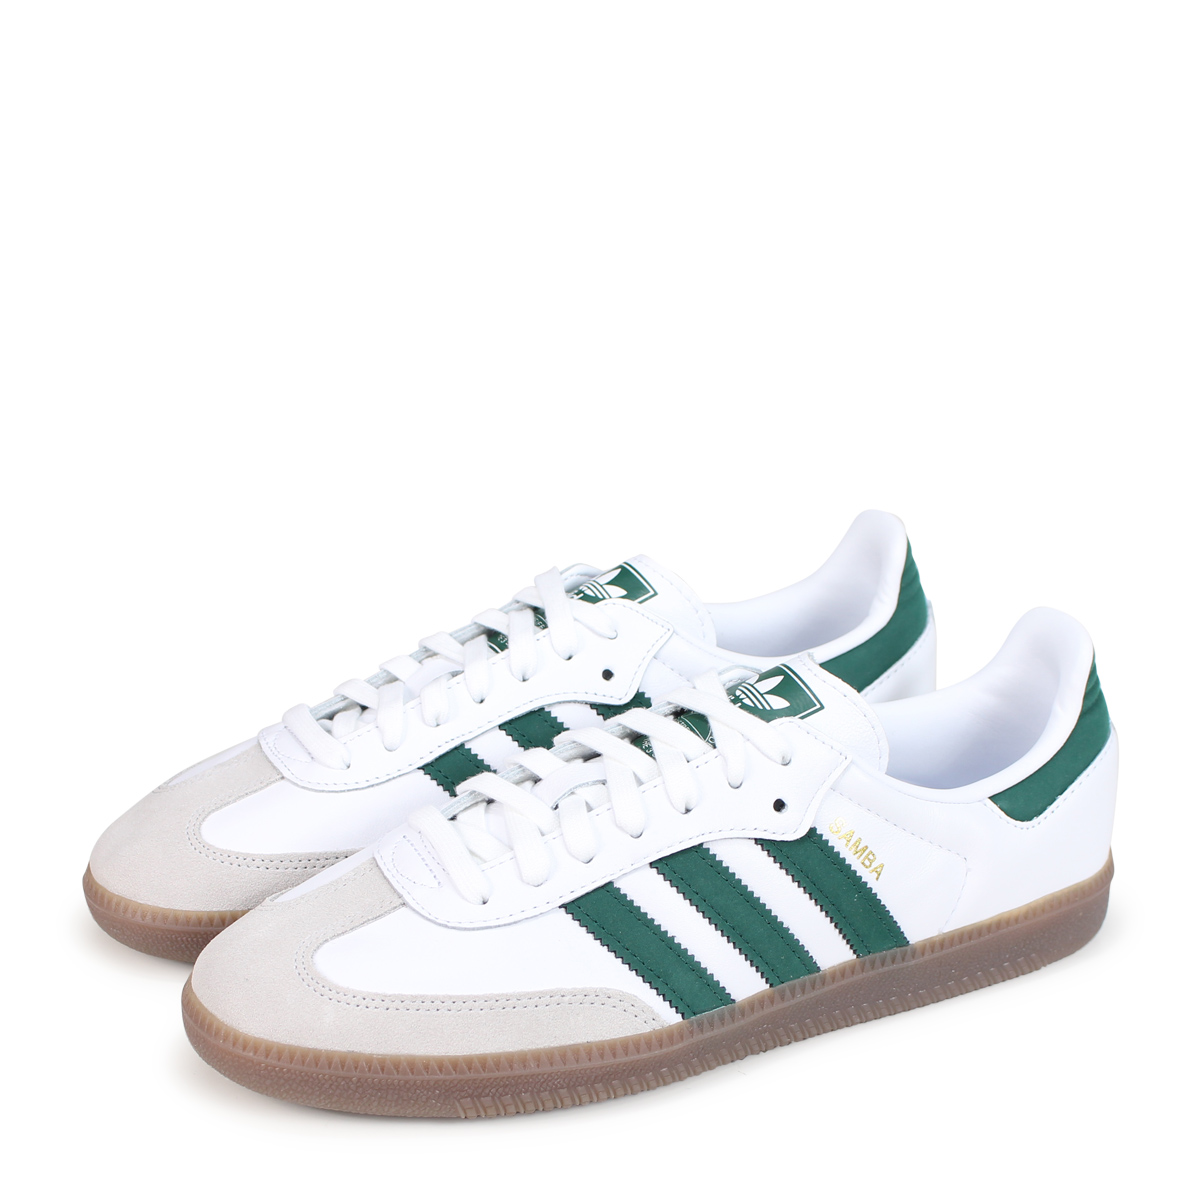 new arrival 96554 810dc  brand Adidas where a lot of masterpieces are loved for many years by  sneakers freak